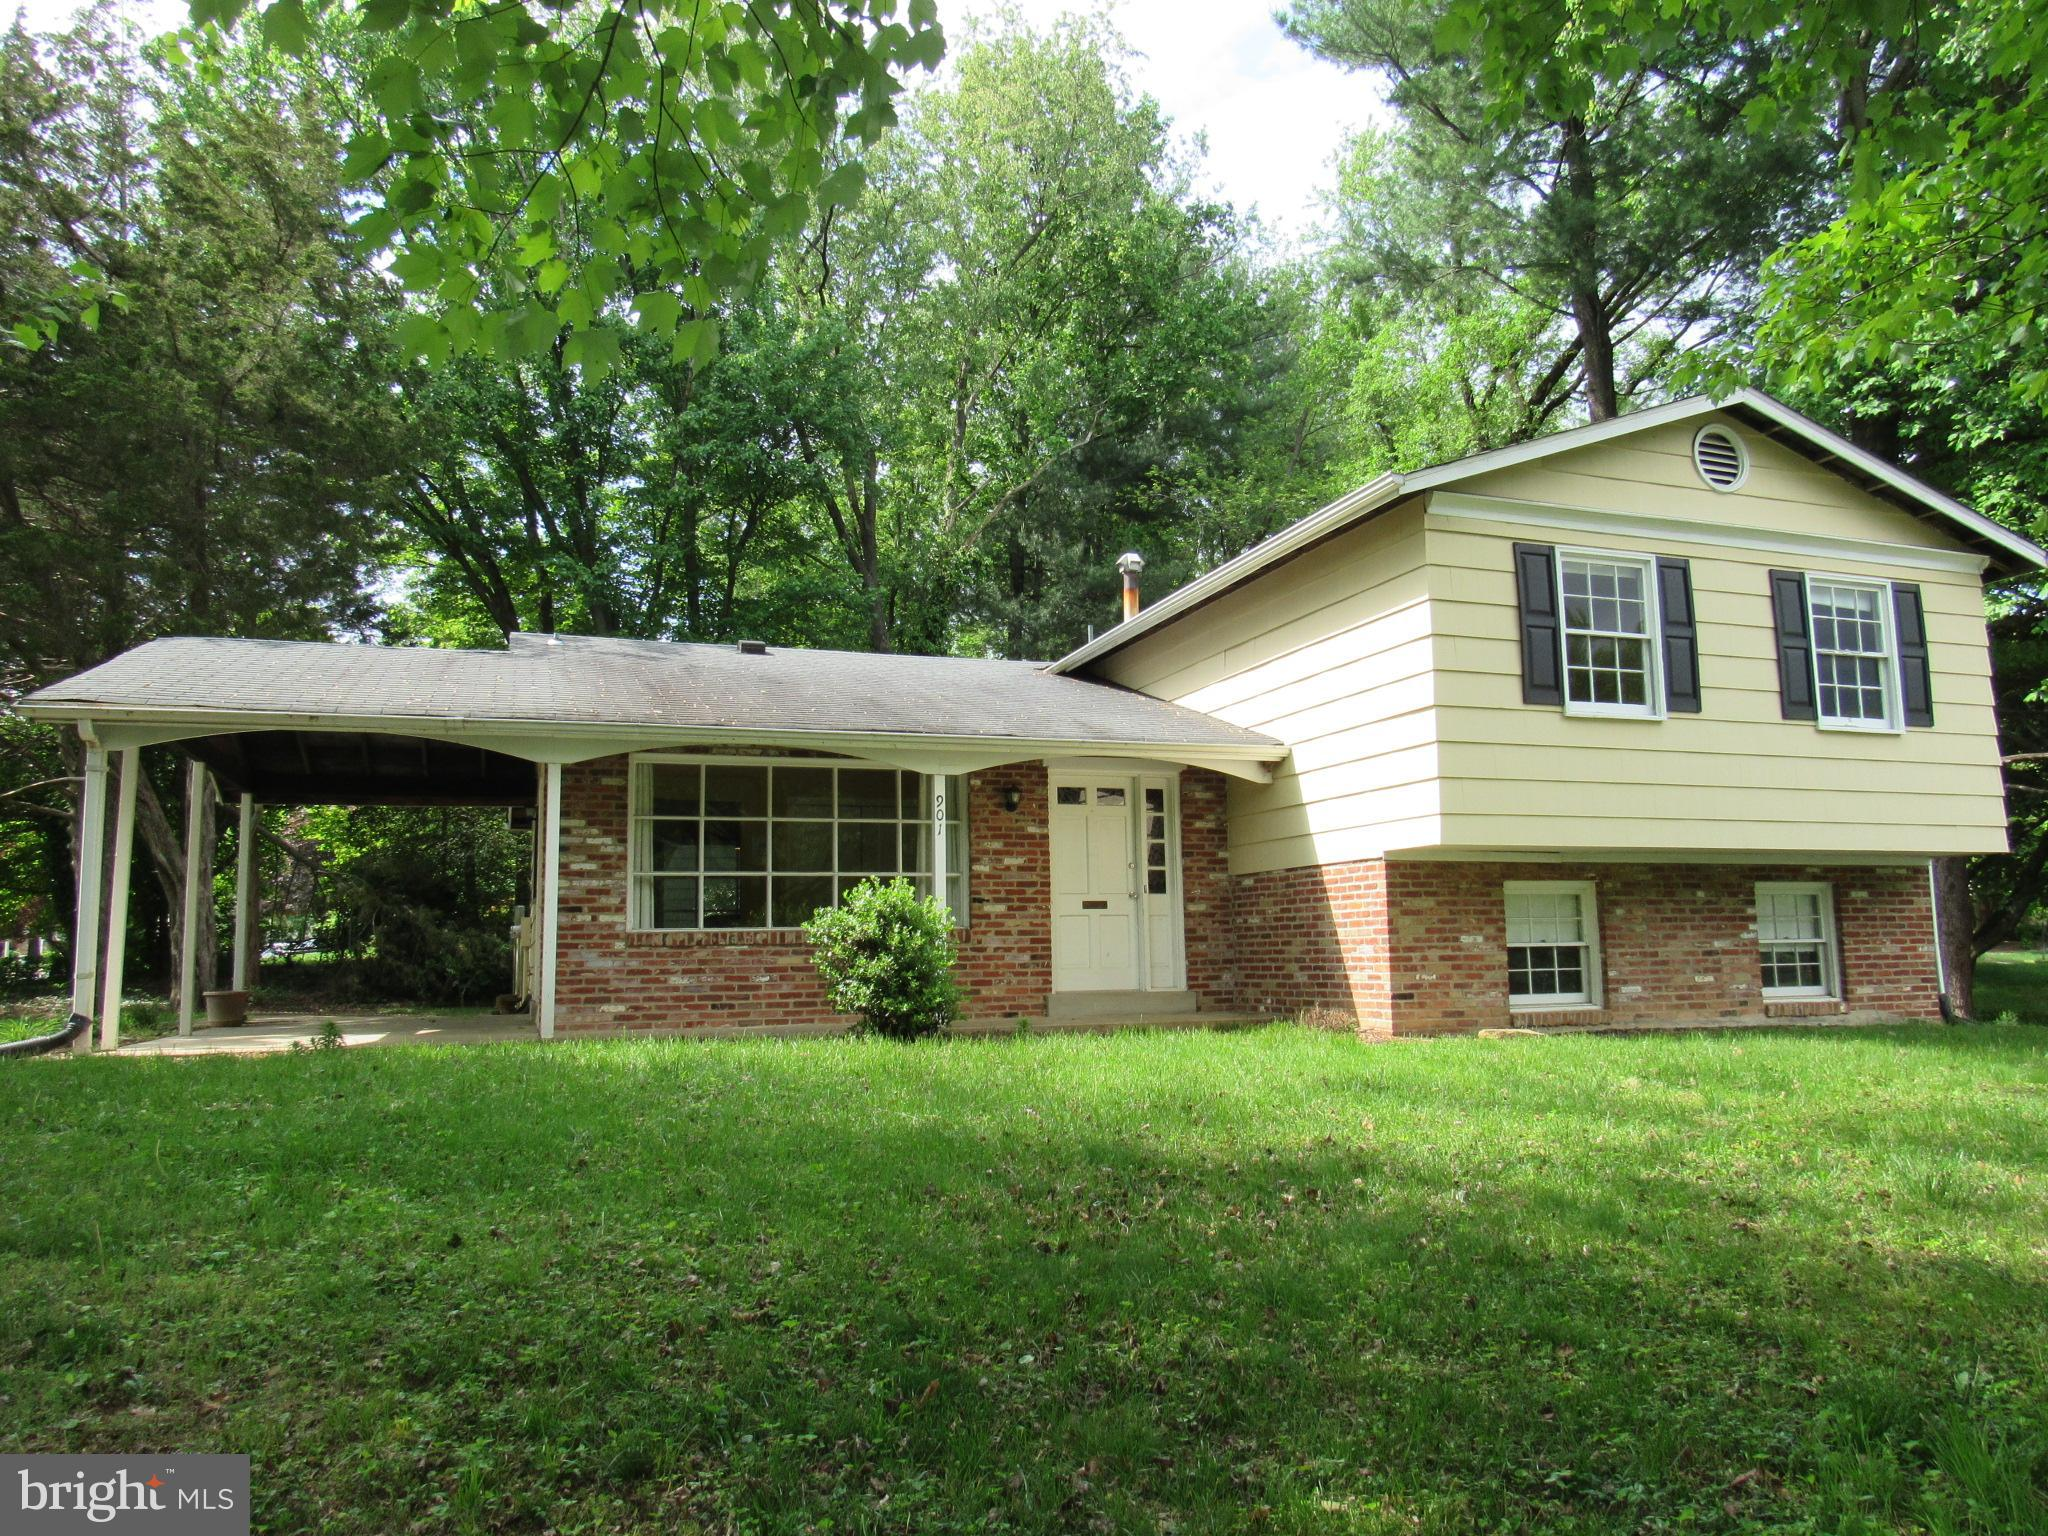 901 W NOLCREST DRIVE, SILVER SPRING, MD 20903